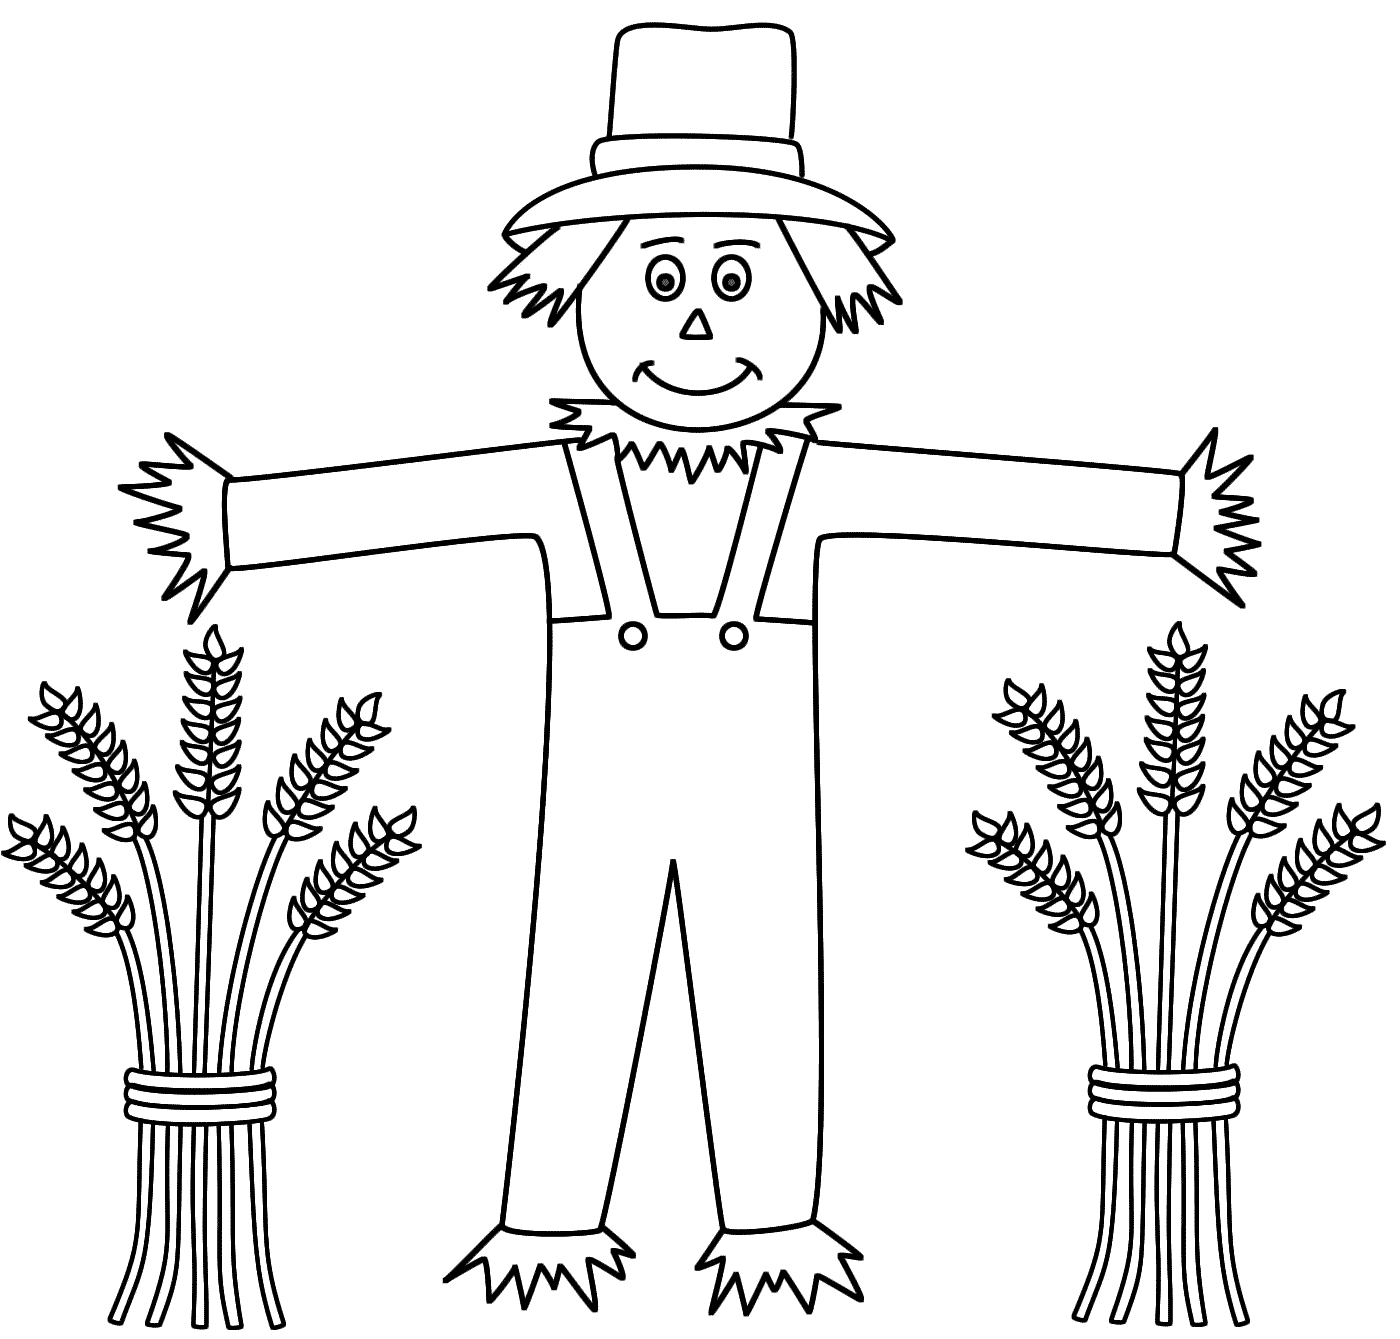 Scarecrow clipart outline Coloring Scarecrow sheaves coloring wheat